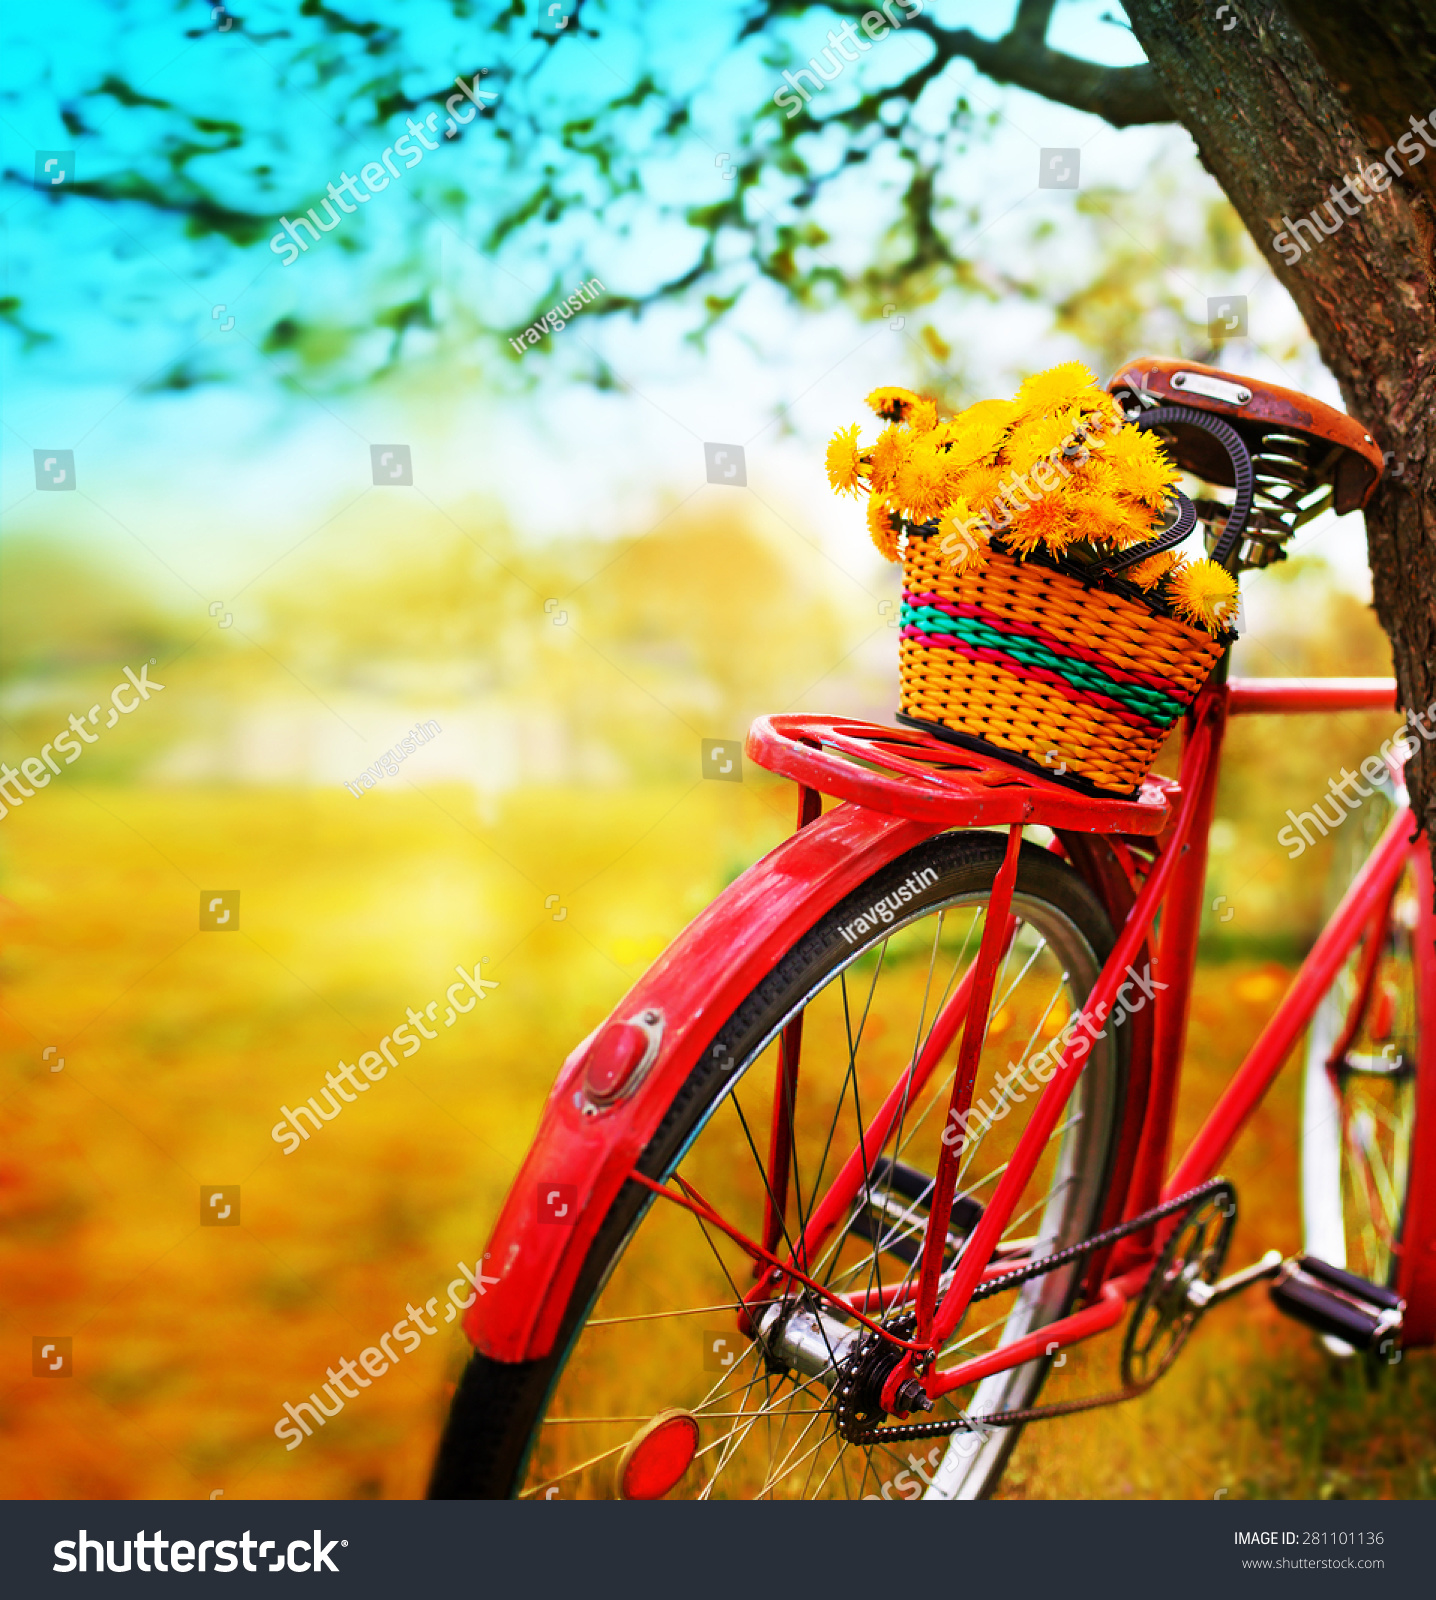 Vintage Bicycle Flowers On Summer Landscape Stock Photo ...